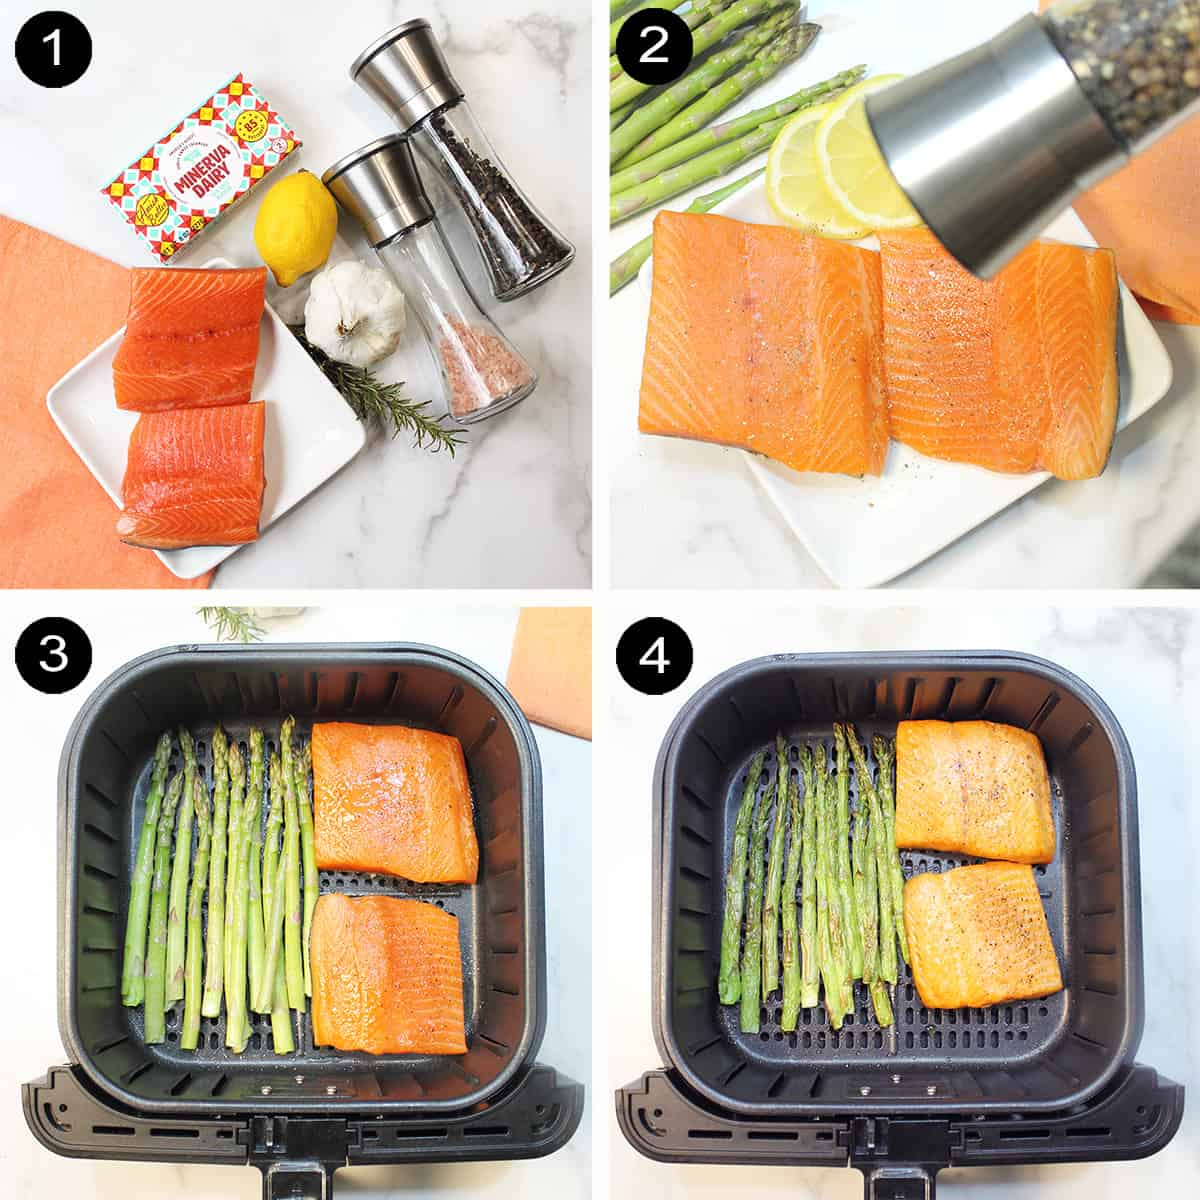 Prepping salmon and cooking salmon and asparagus in air fryer.